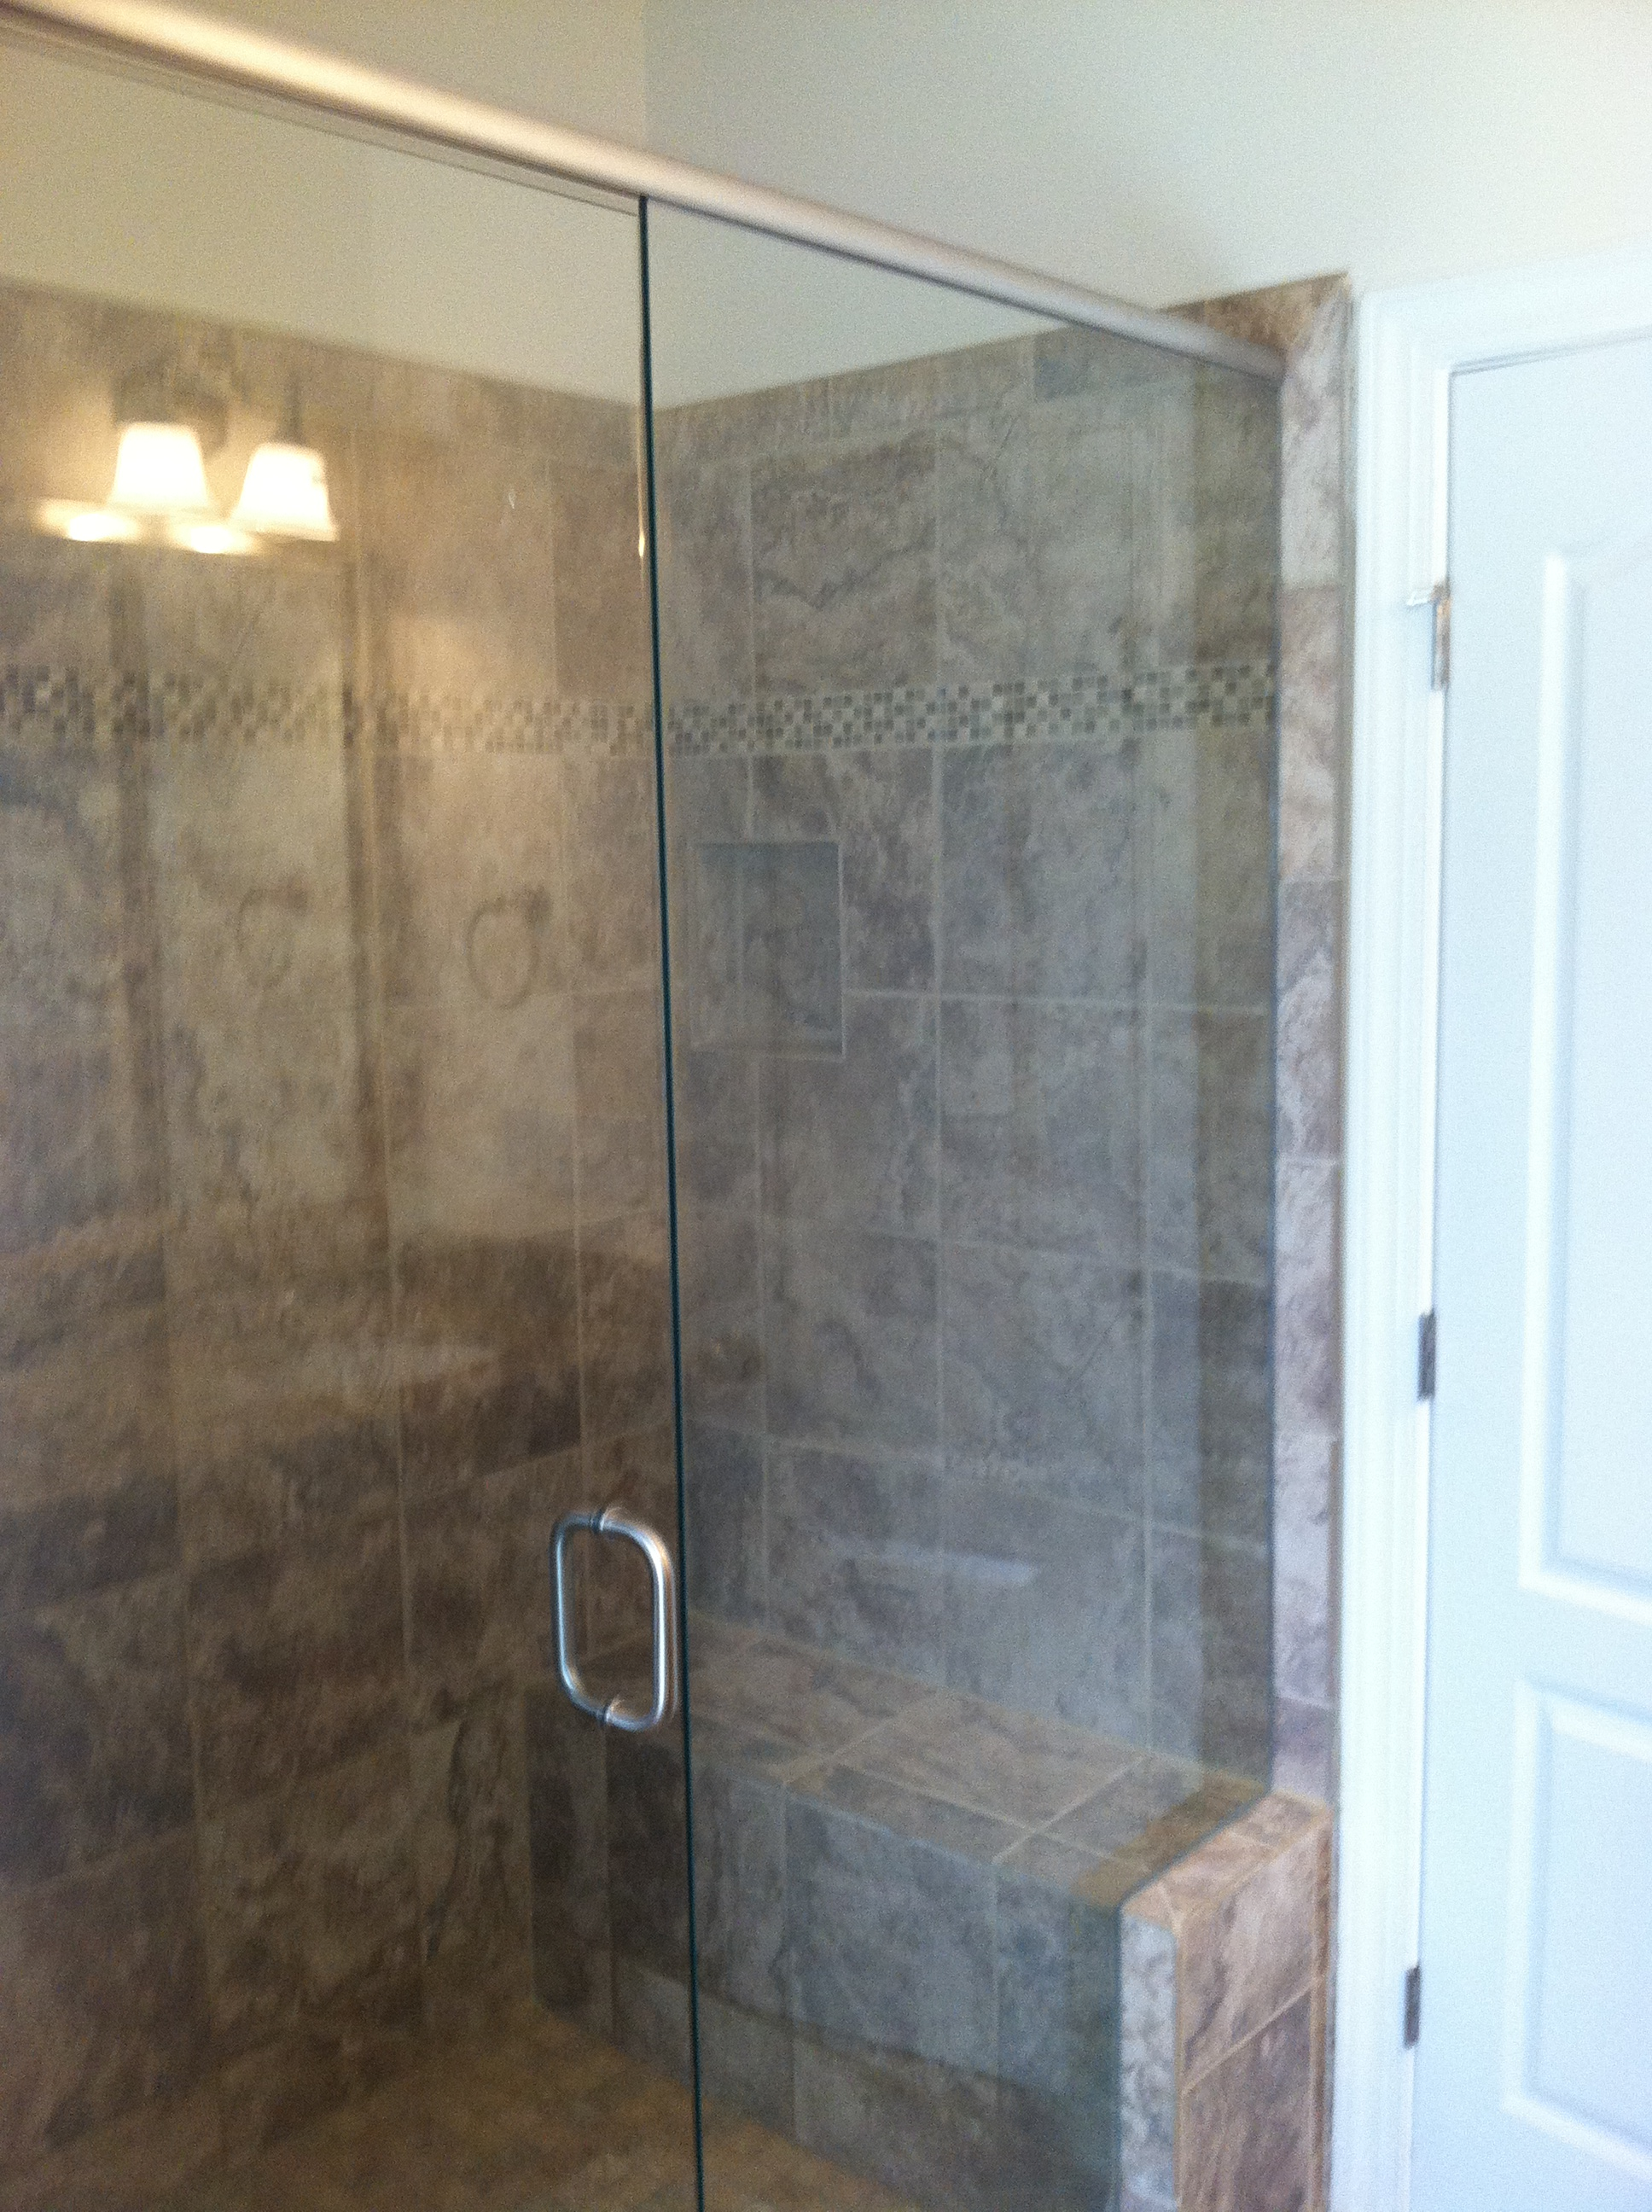 Good Tip For Cleaning Glass Shower Doors